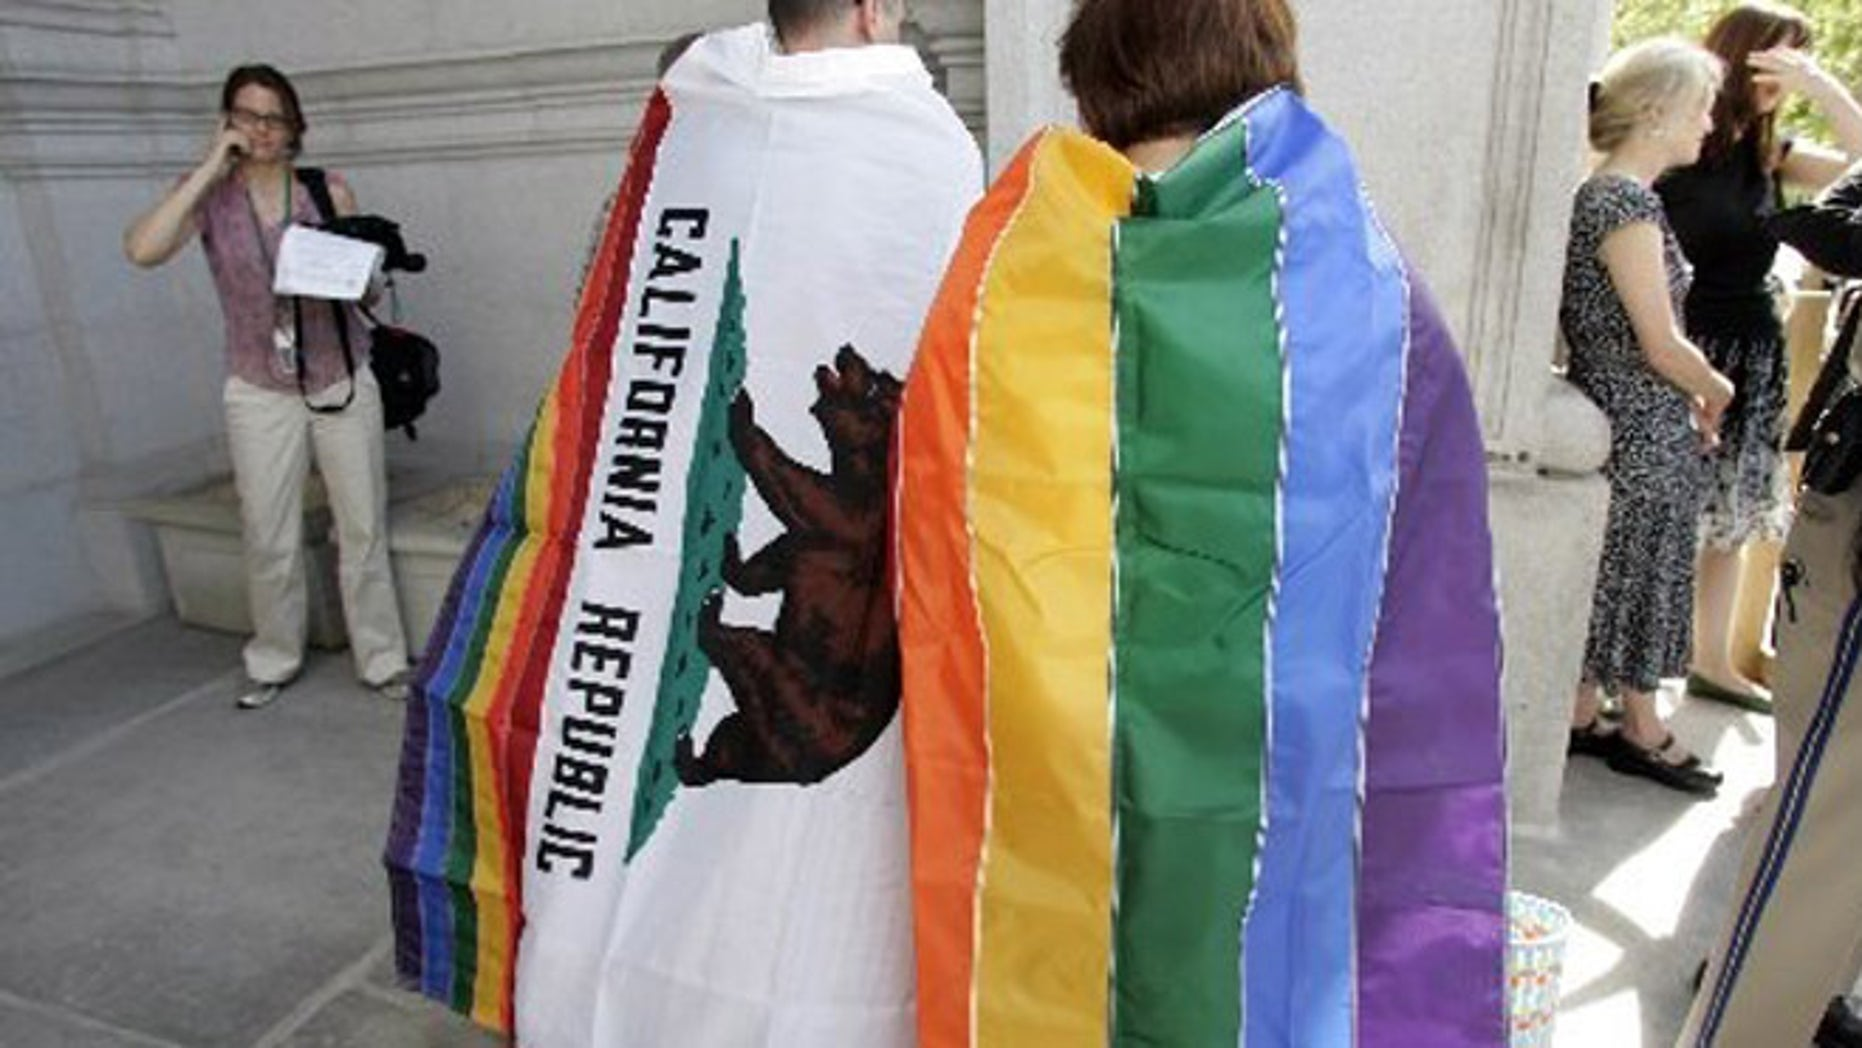 Gay rights supporters wear a California state flag, left, and a gay pride flag outside of the California State Supreme Court building in San Francisco.